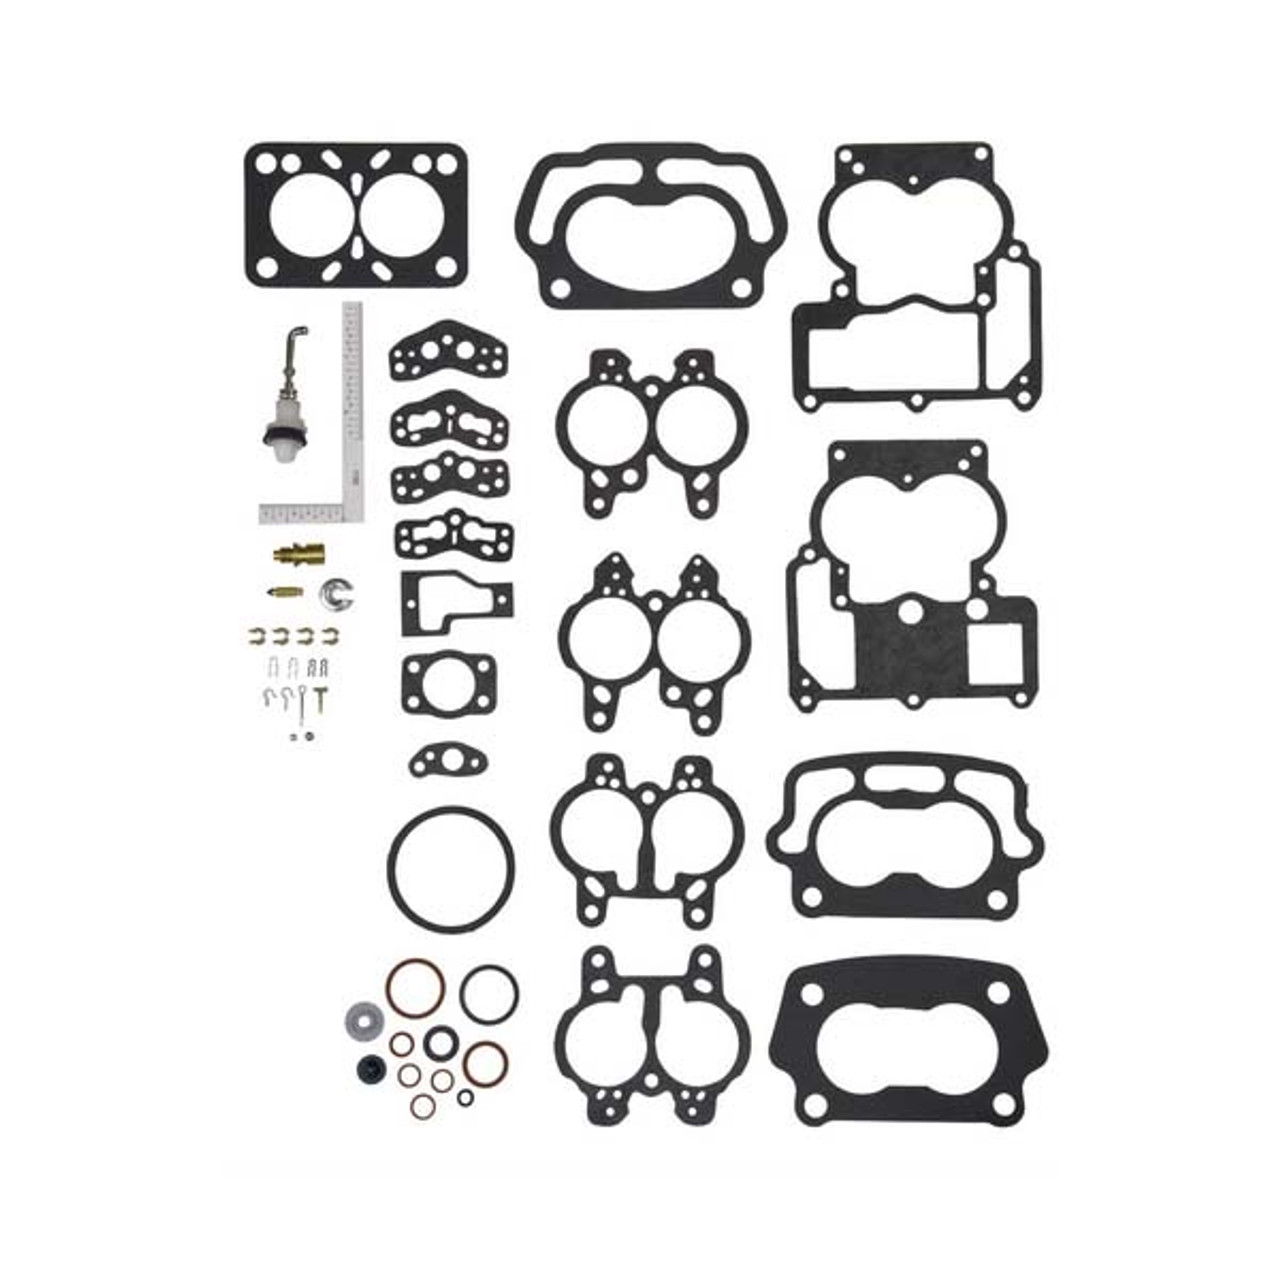 Marine Inboard Outboard Fuel Carburator Kit 2 BLL Rochester WSM 18-7746 OEM# 823427A1 See models in description